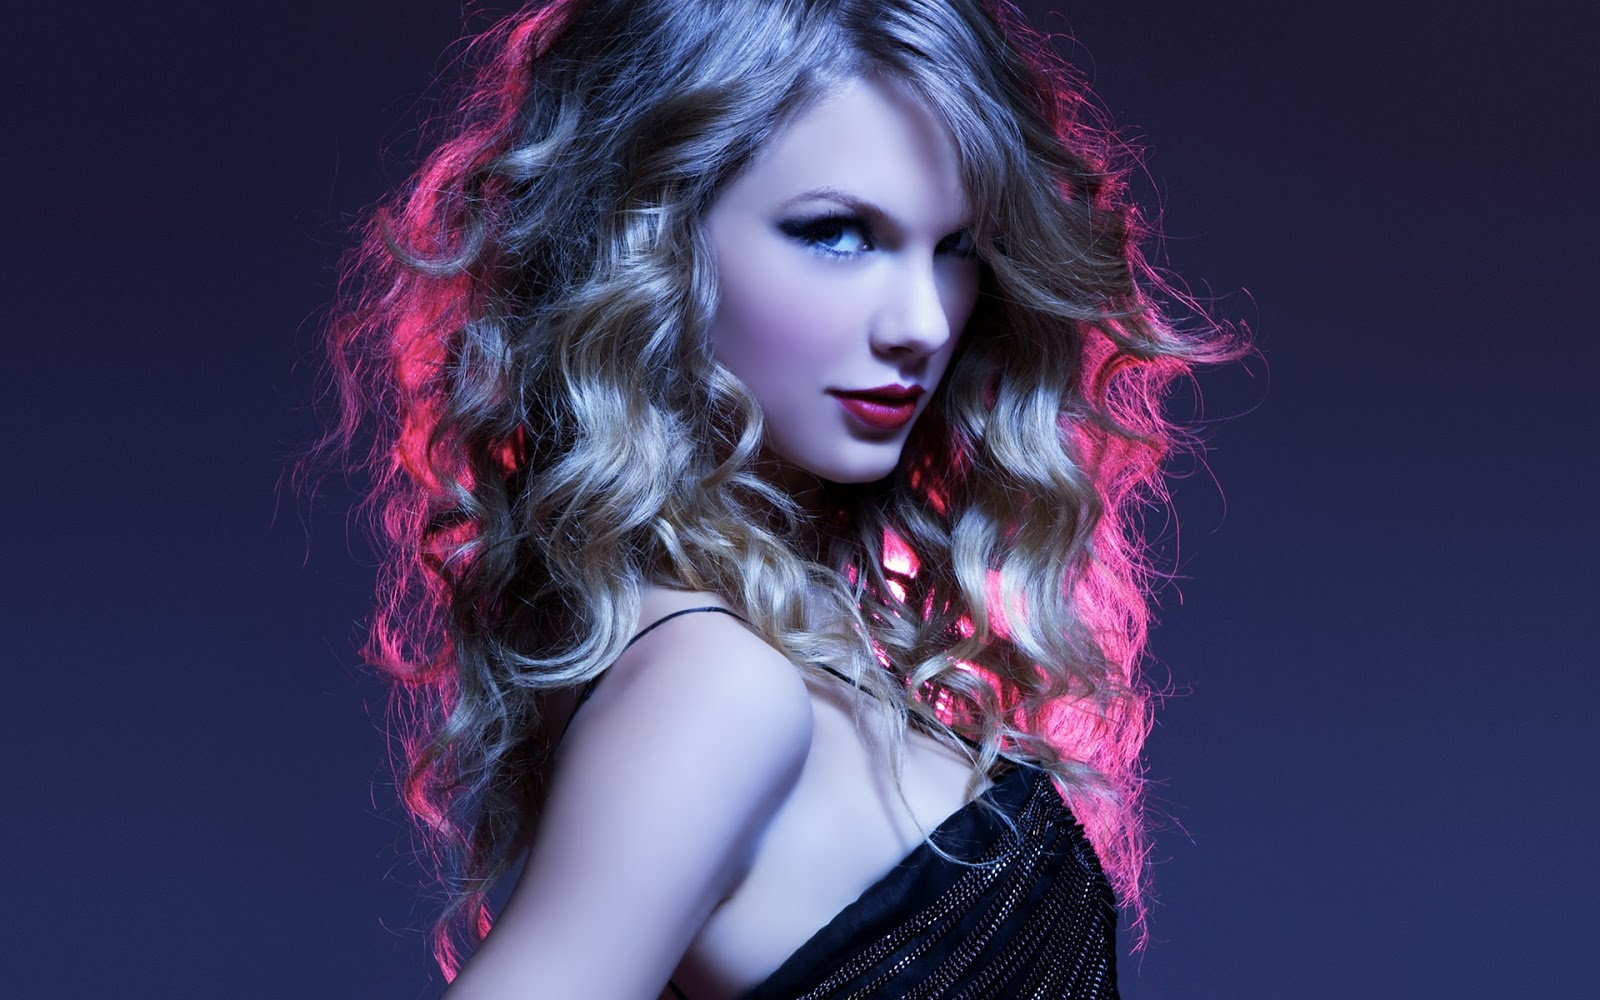 HD Wallpapers Of Taylor Swift